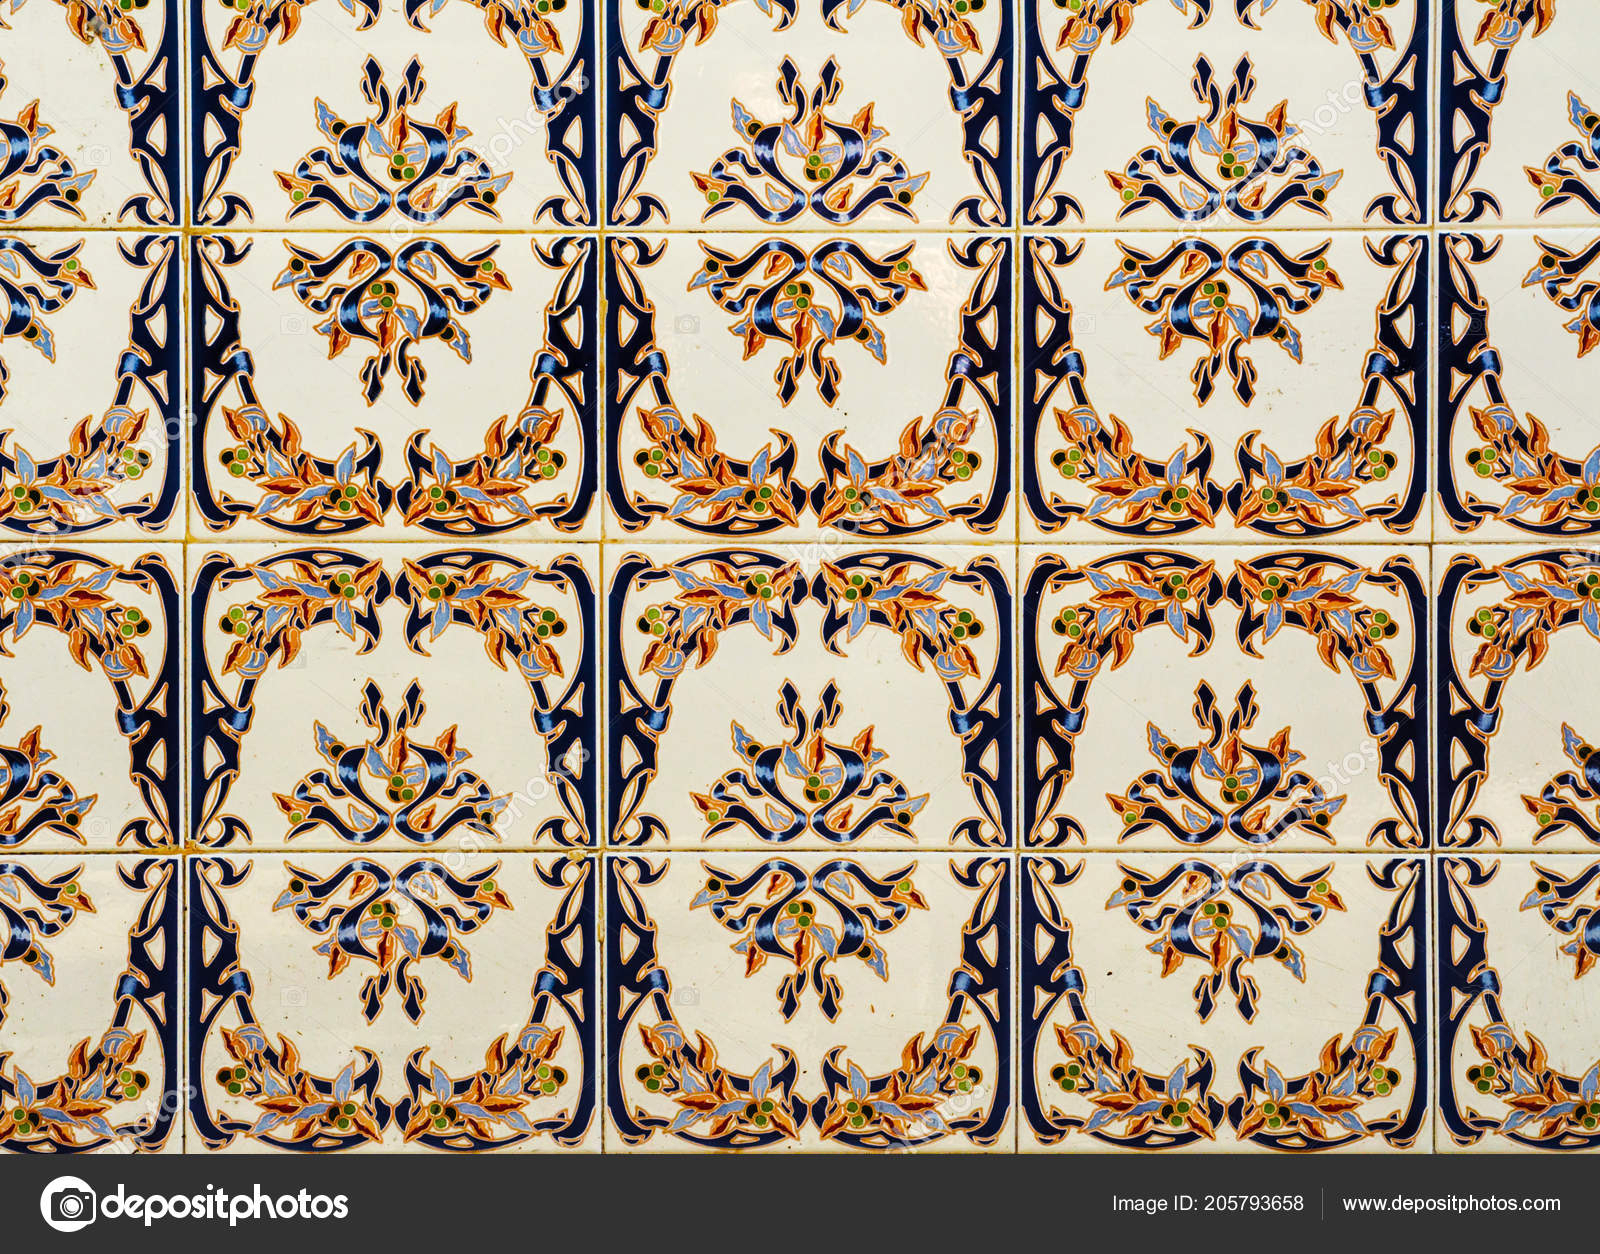 Traditional Ornamental Spanish Decorative Tiles Original Throughout Spanish Ornamental Wall Decor (View 12 of 30)